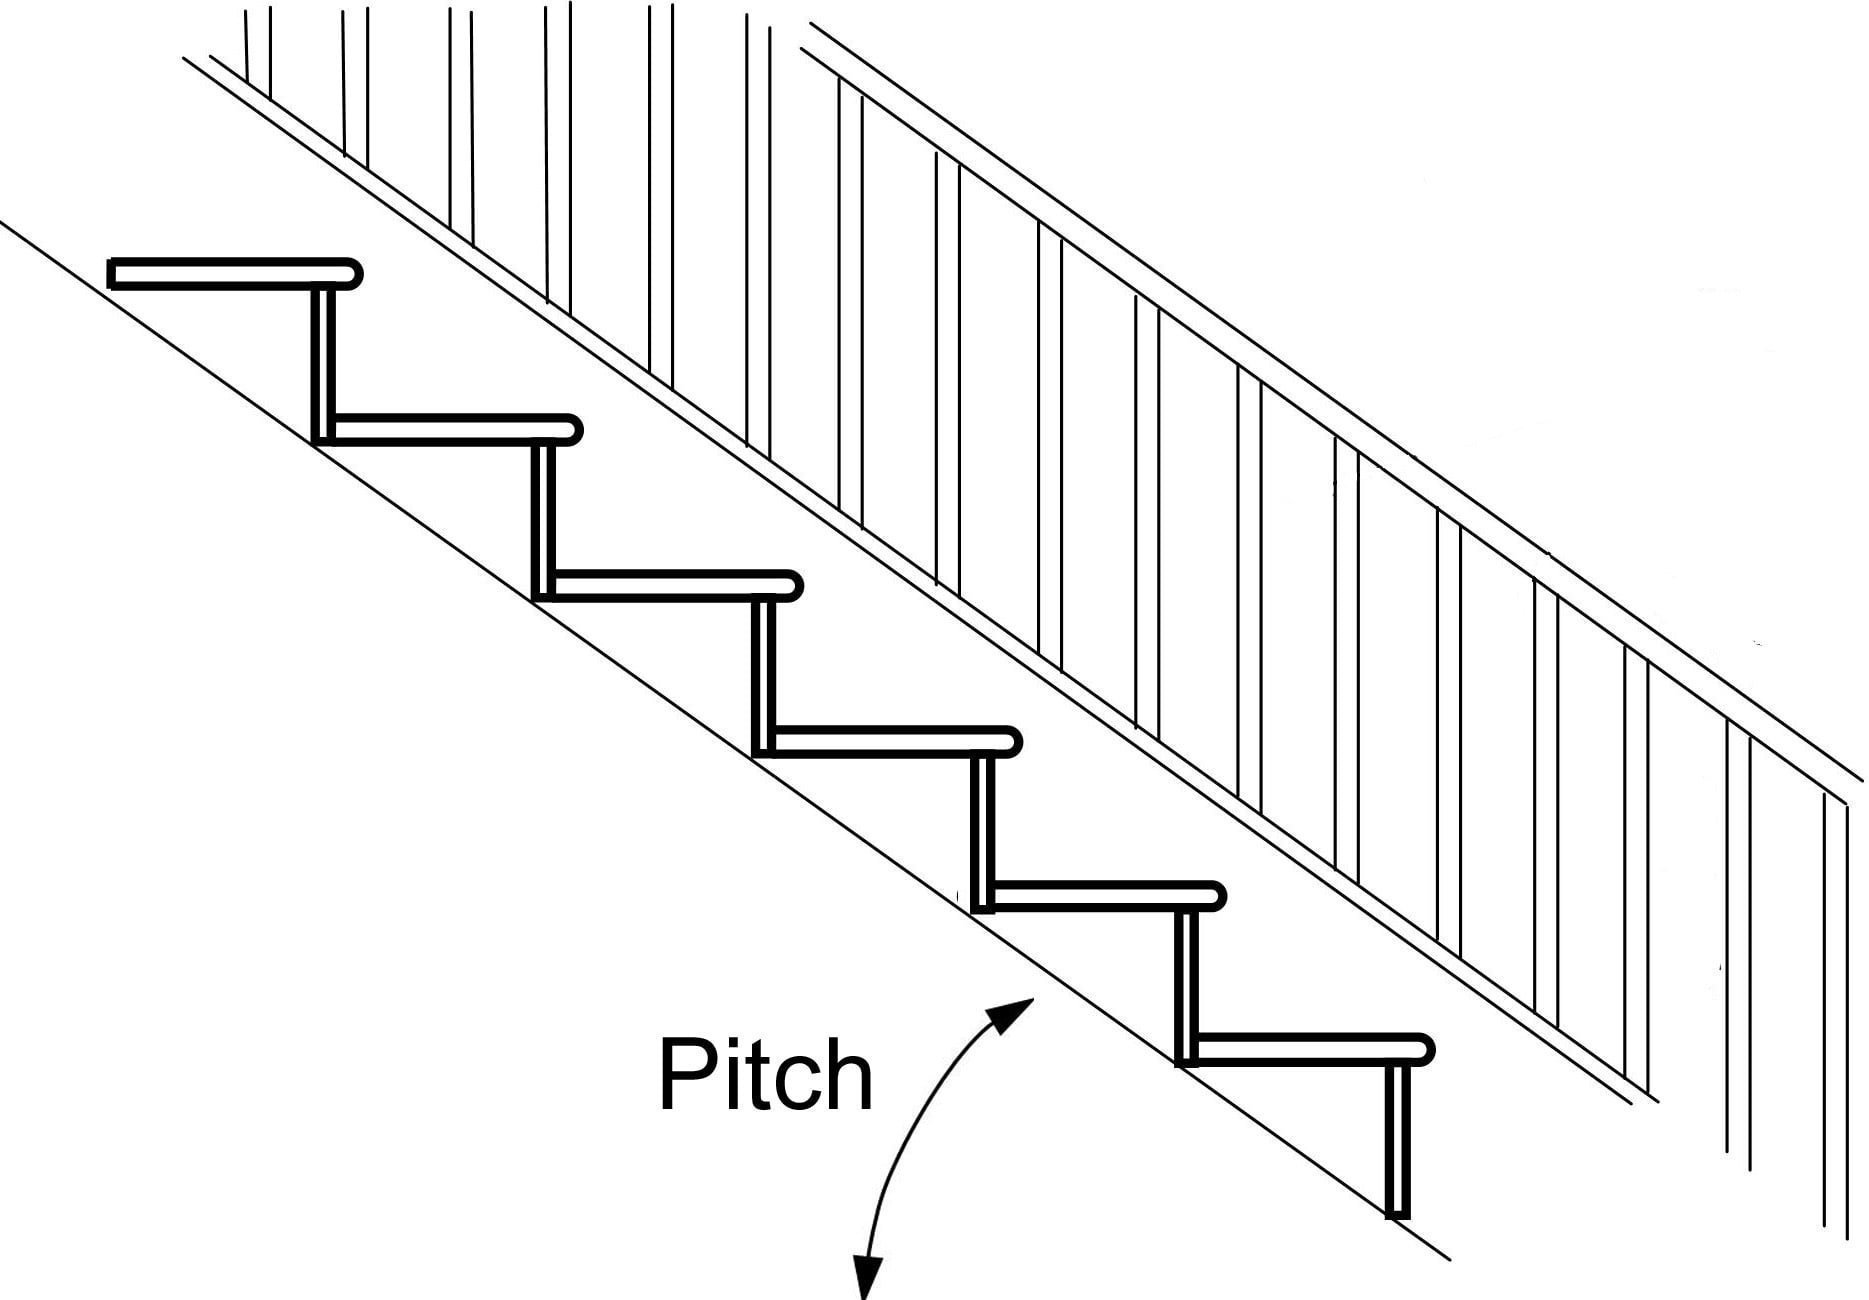 hight resolution of pitch of stairs